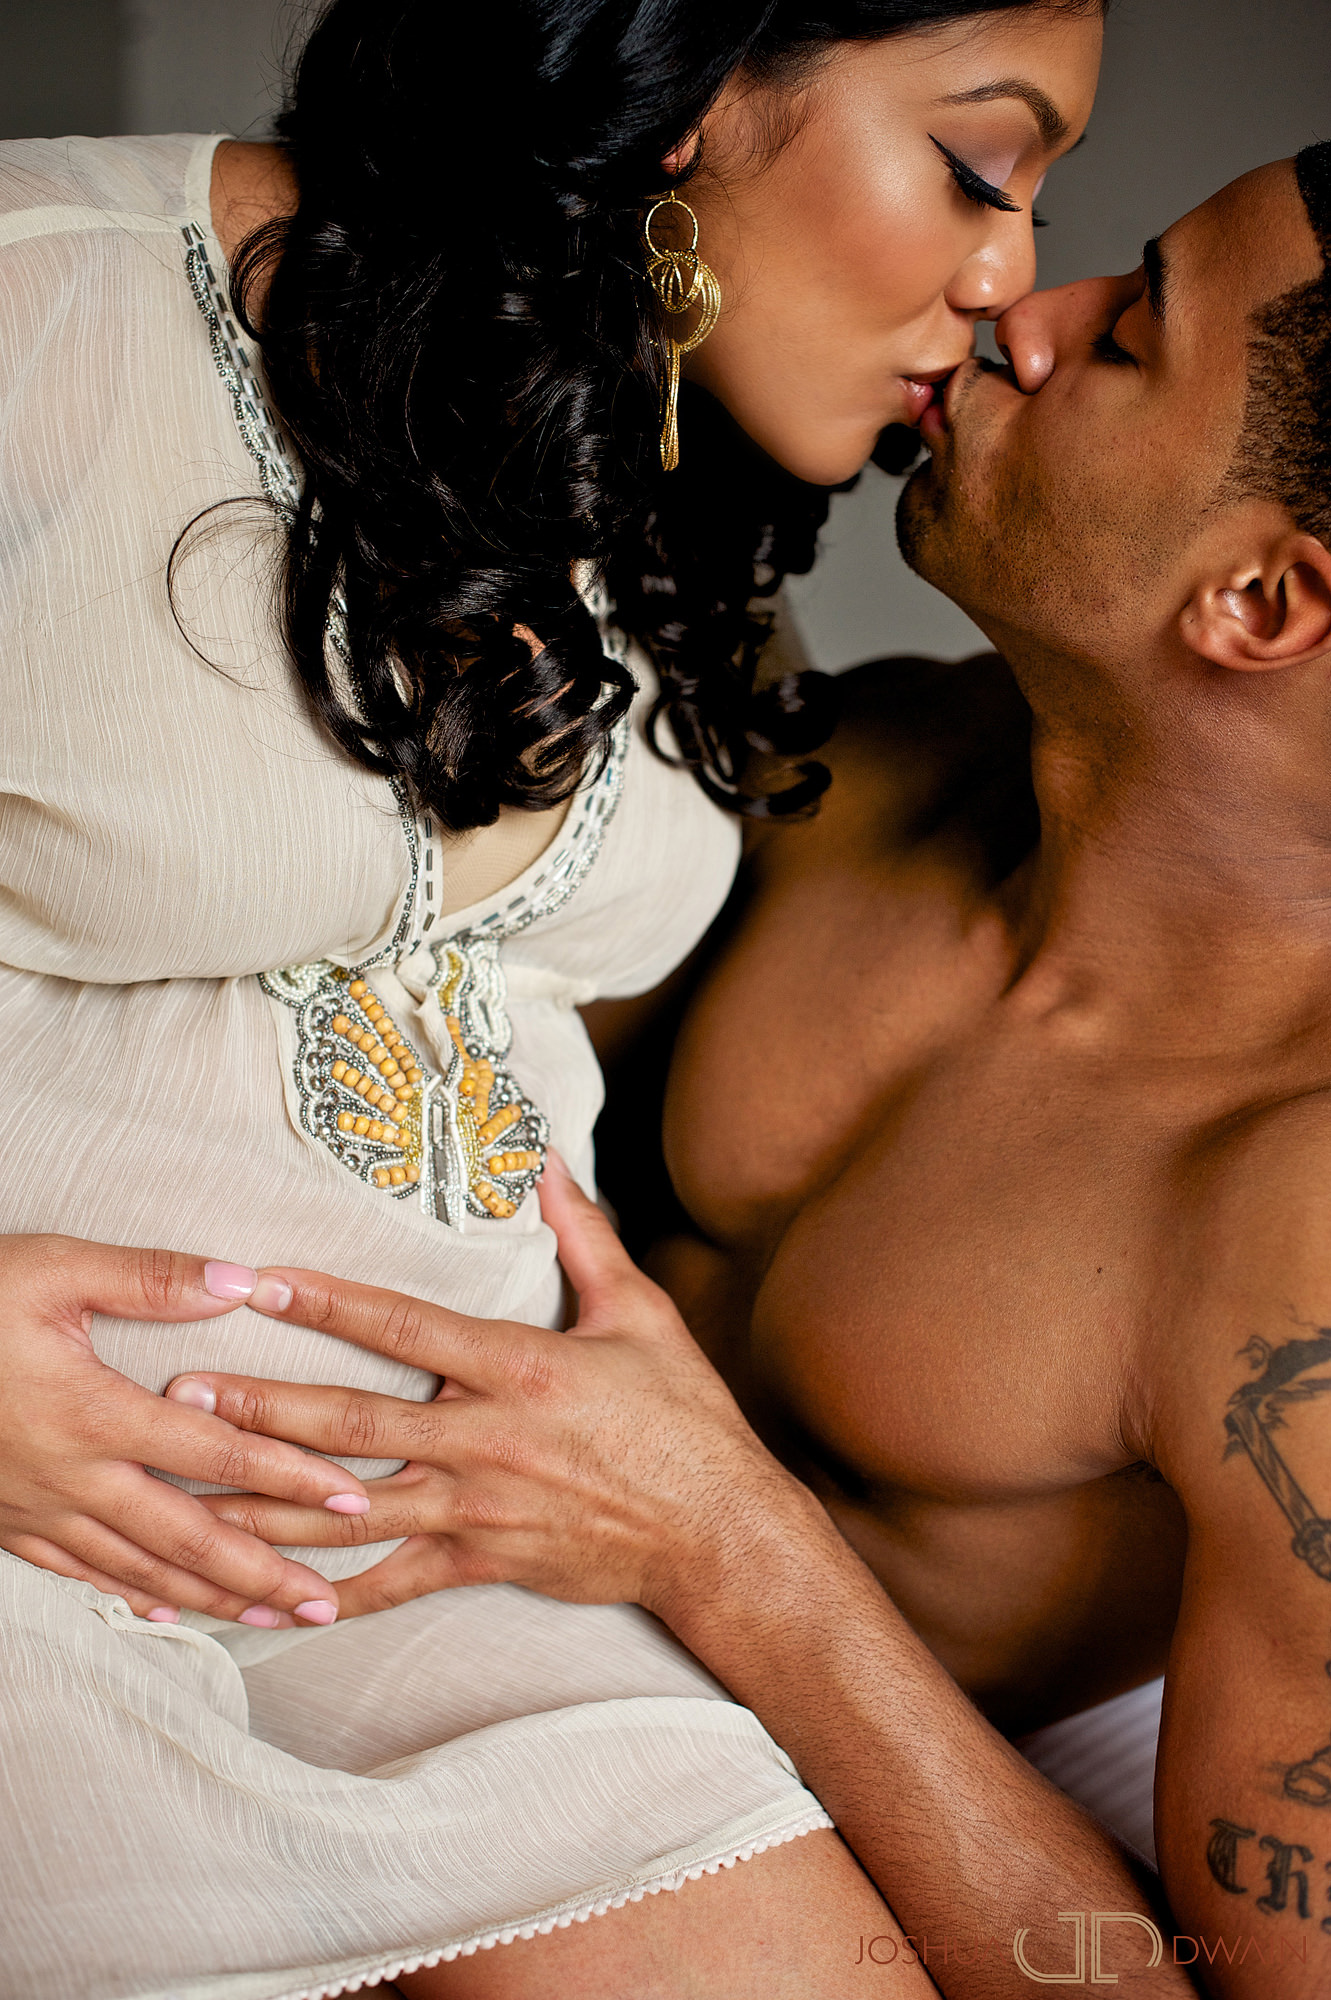 khadeen-ellis-005-new-york-city-maternity-photographer-joshua-dwain-2011-03-18_KD_025